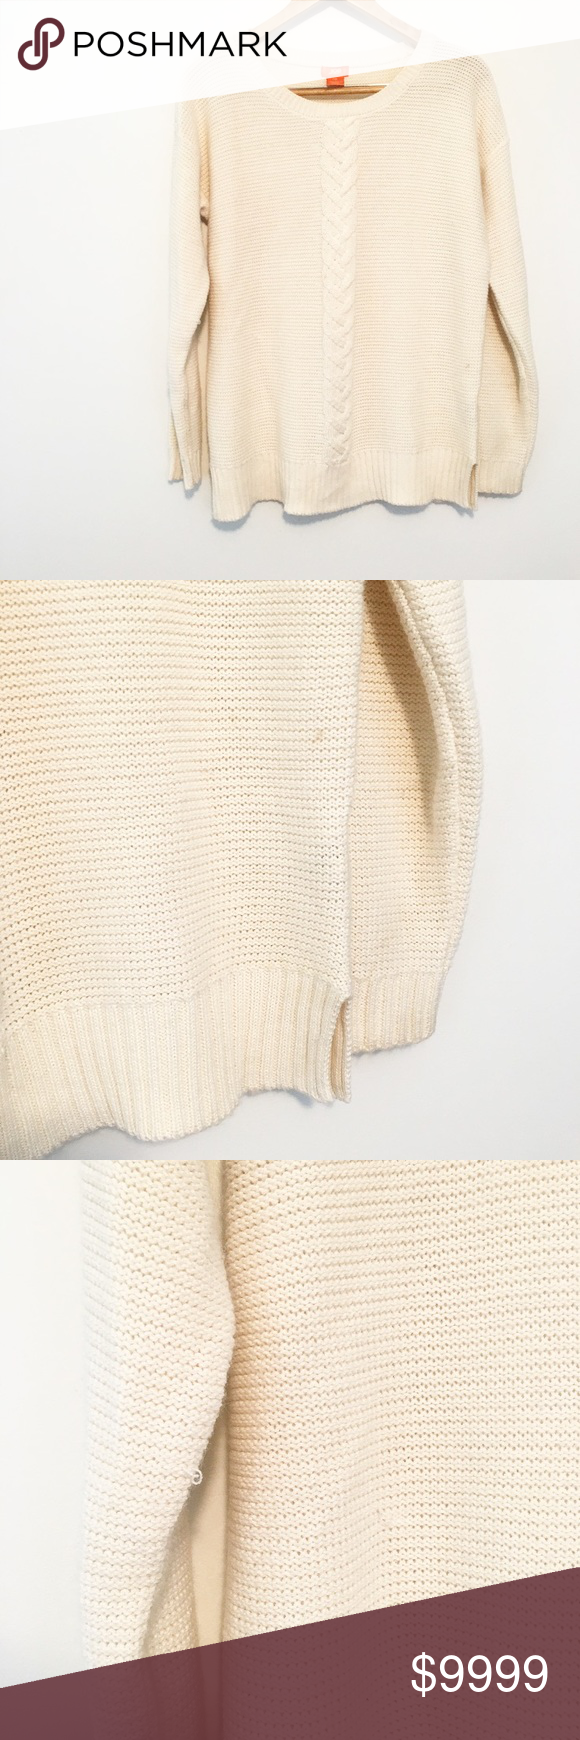 Cute Cream Sweater | Joe fresh, Fresh cream and Customer support